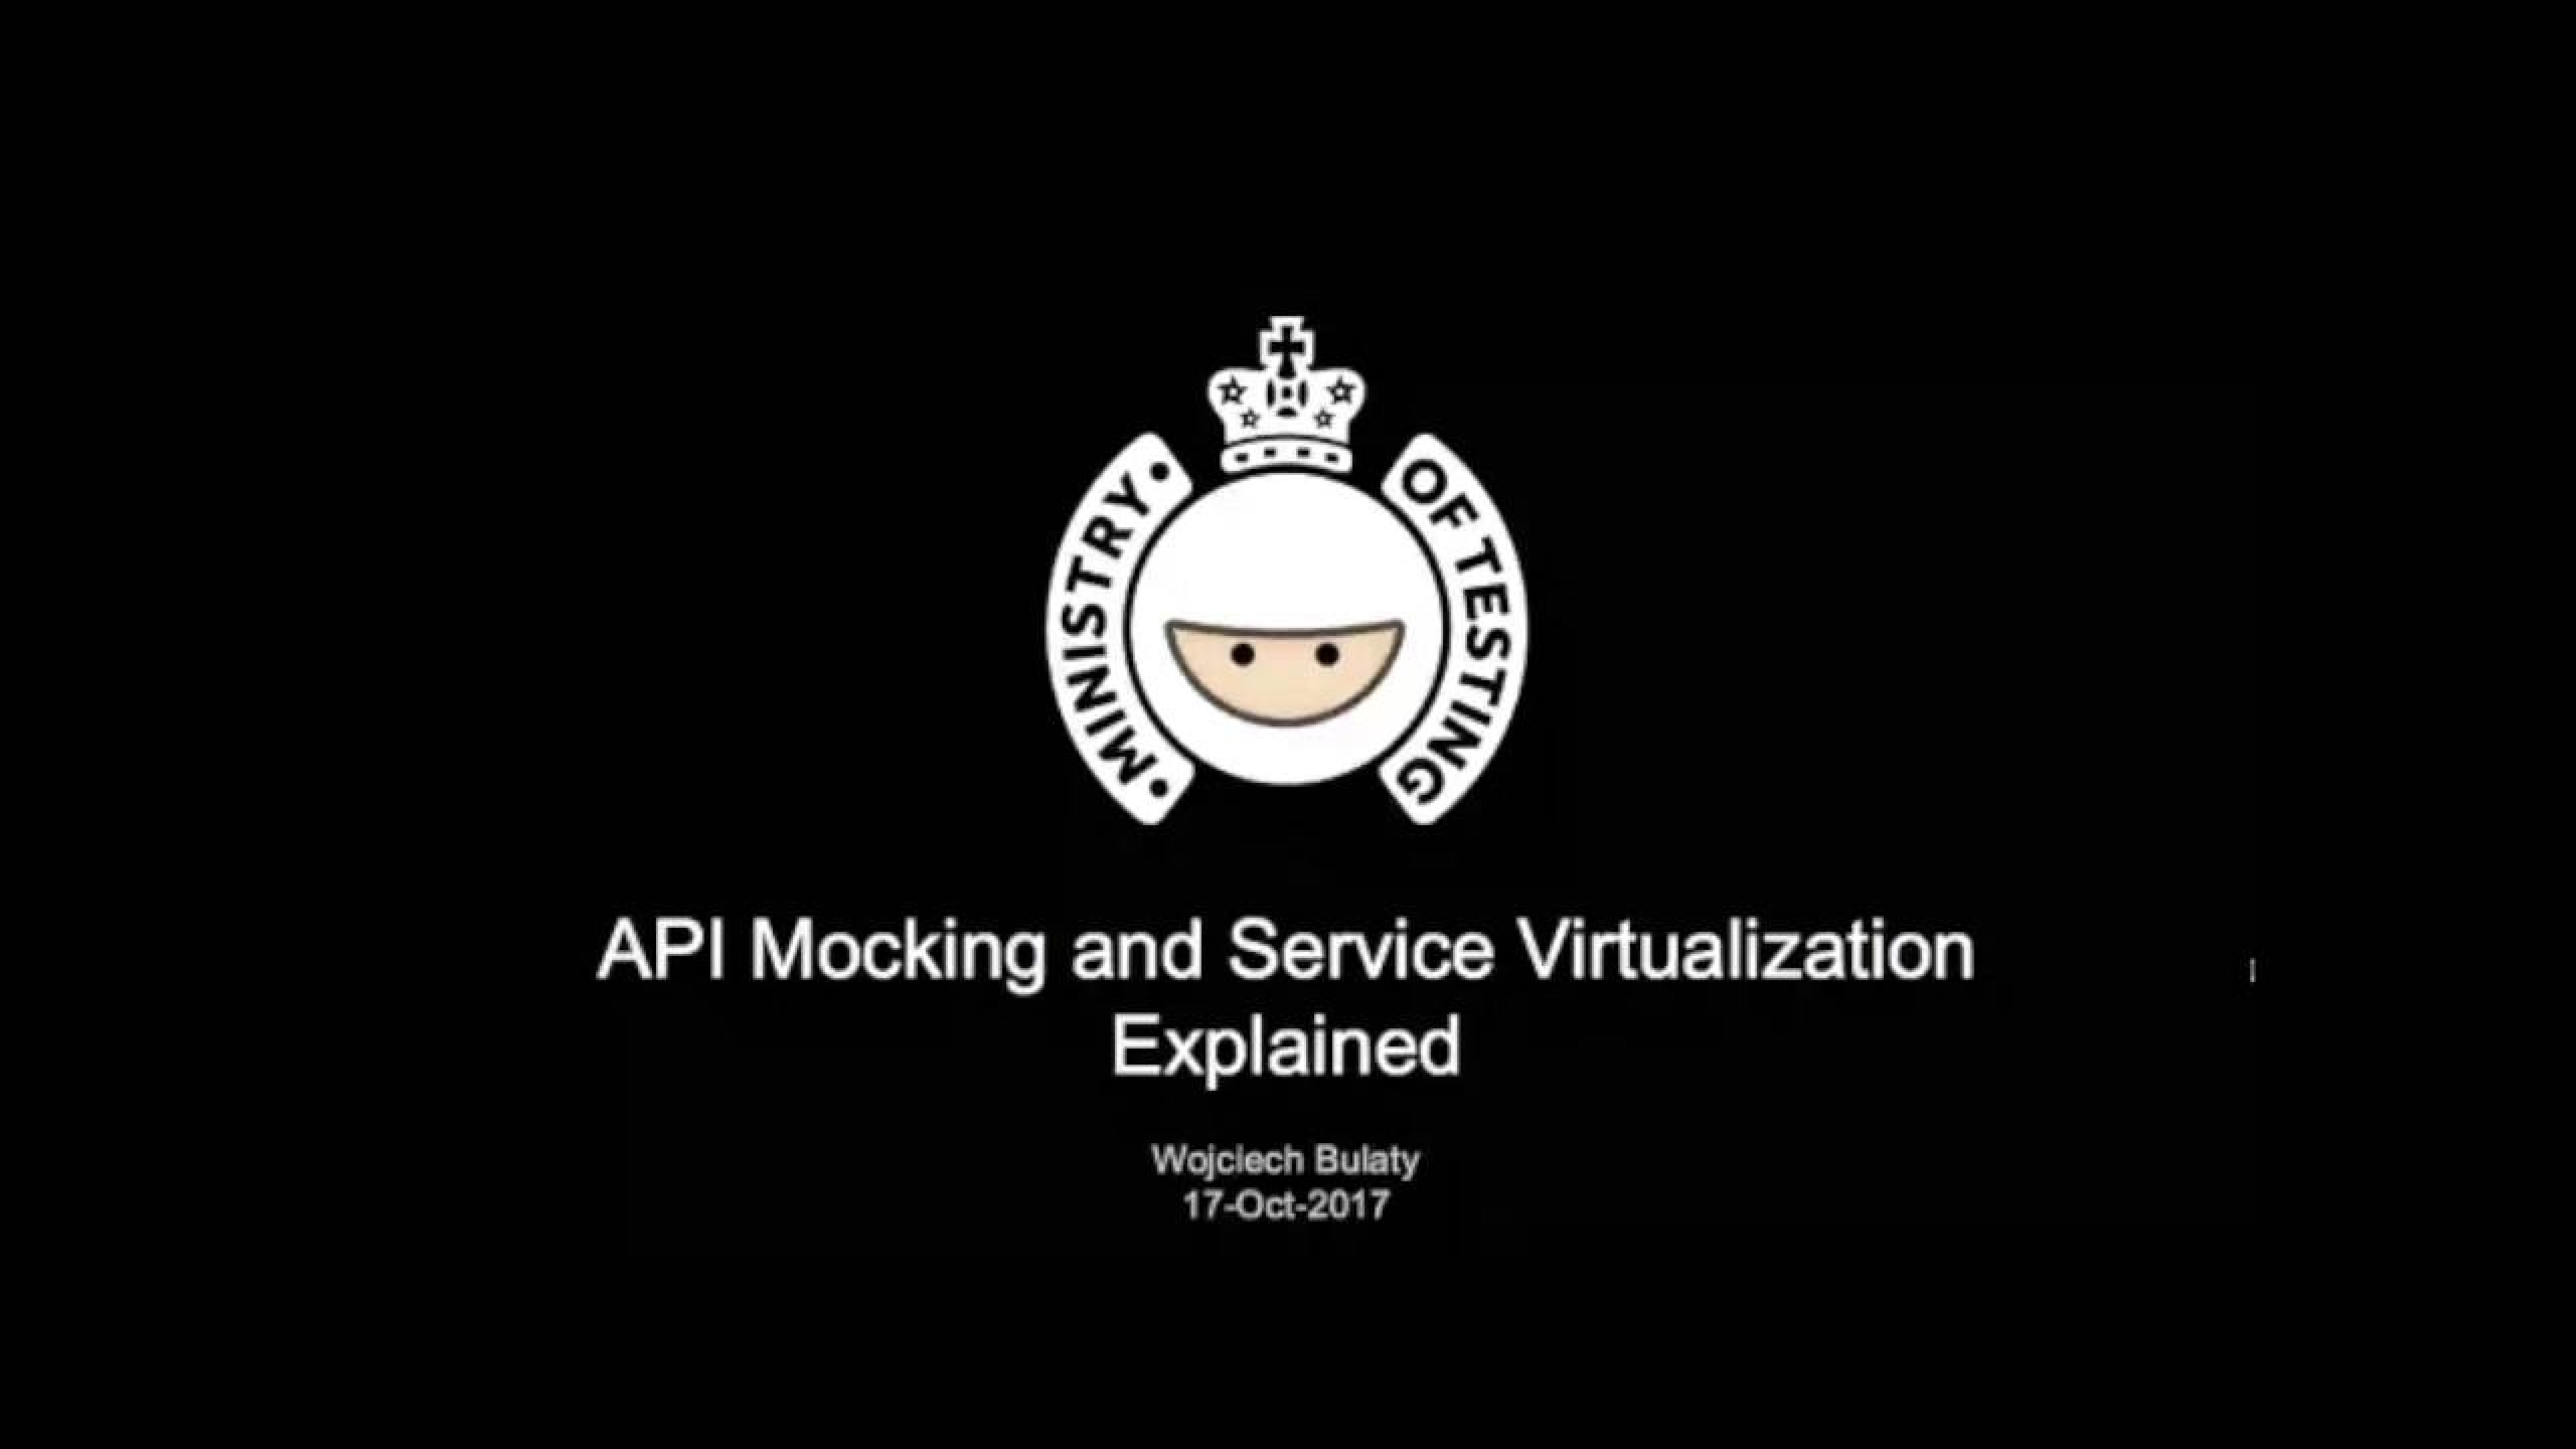 API Mocking and Service Virtualization Explained with Wojciech Bulaty